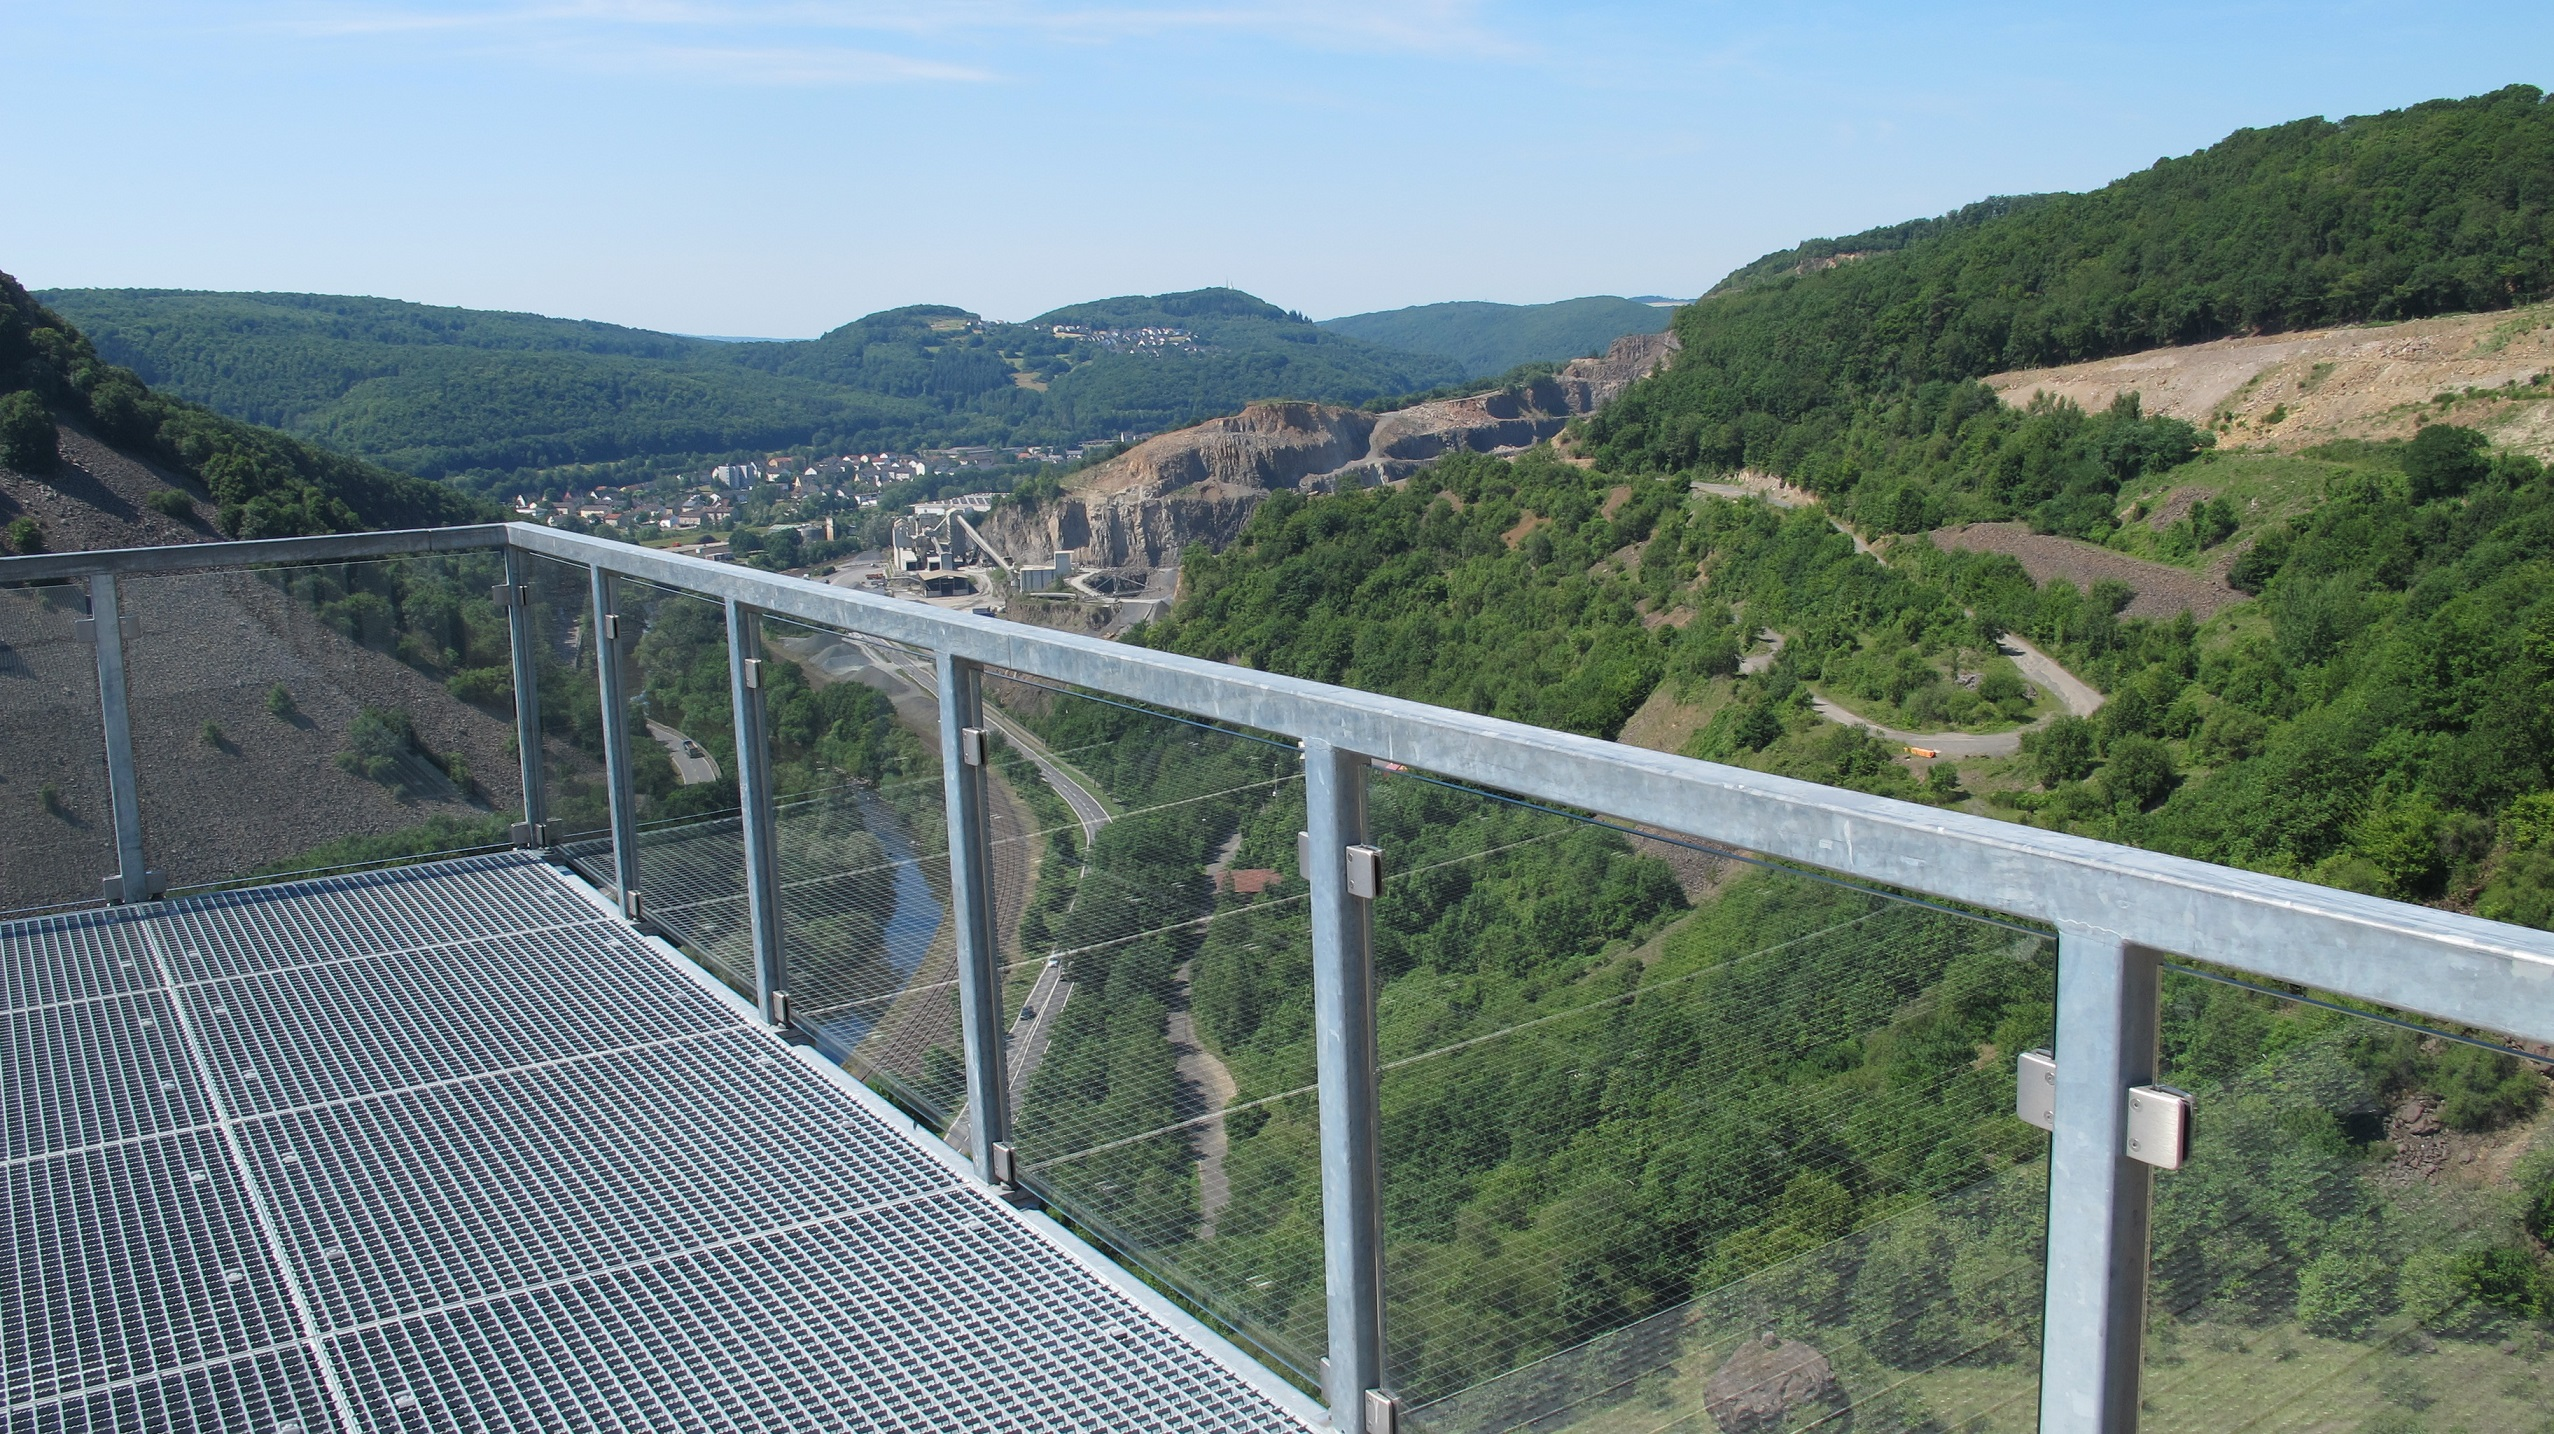 naheskywalk IMG_1298b.jpg